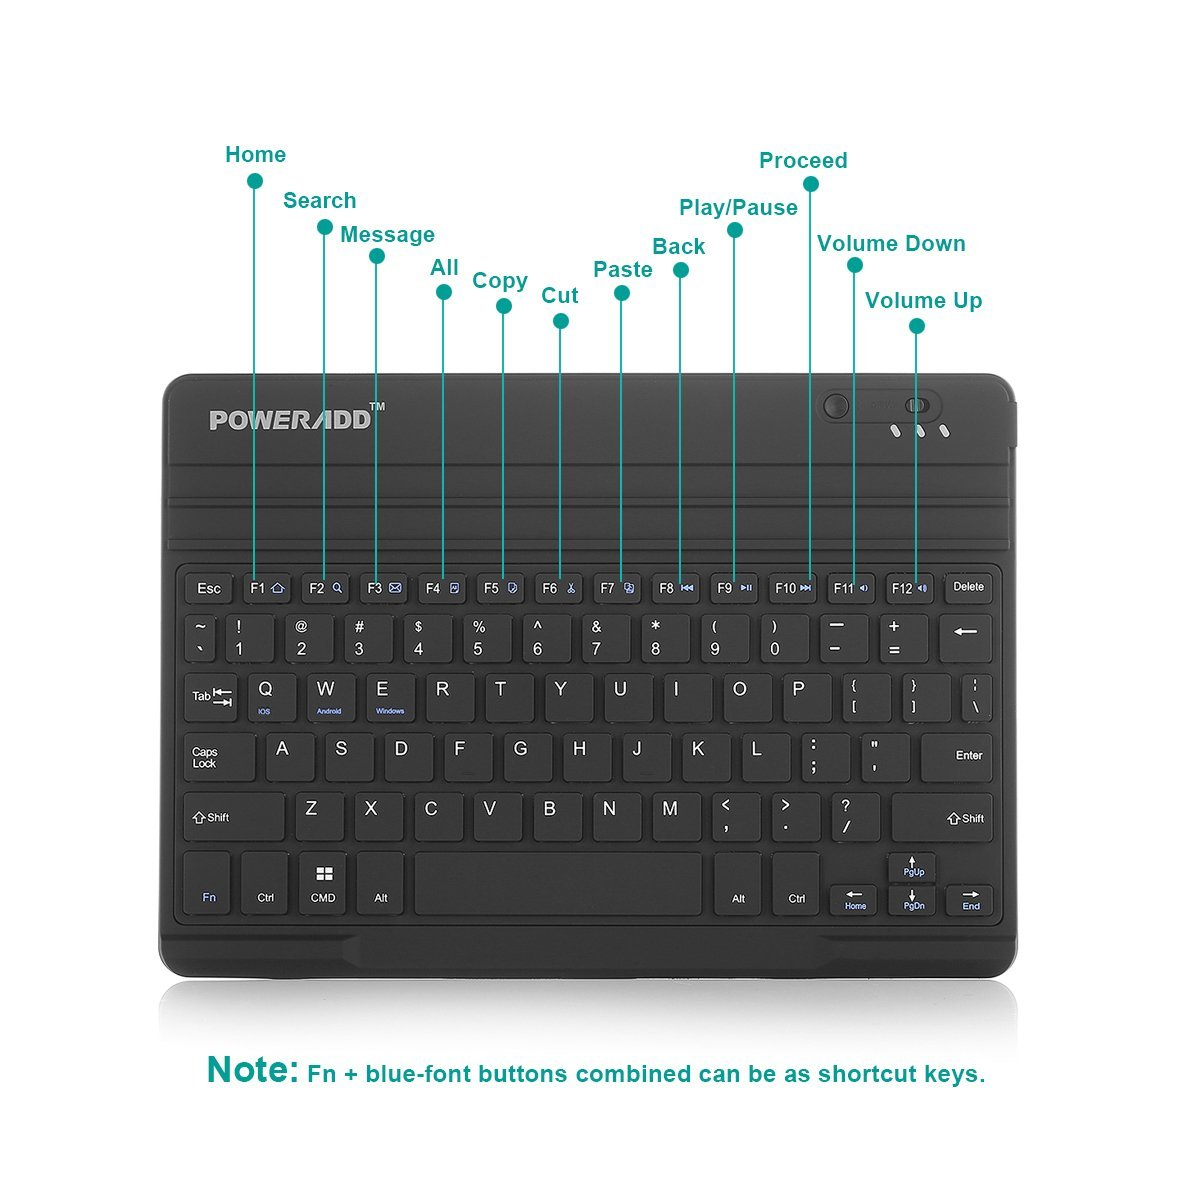 External Bluetooth Keyboard For Android Phone: Universal Wireless Bluetooth Keyboard For IOS Android Windows Tablets PC Laptops